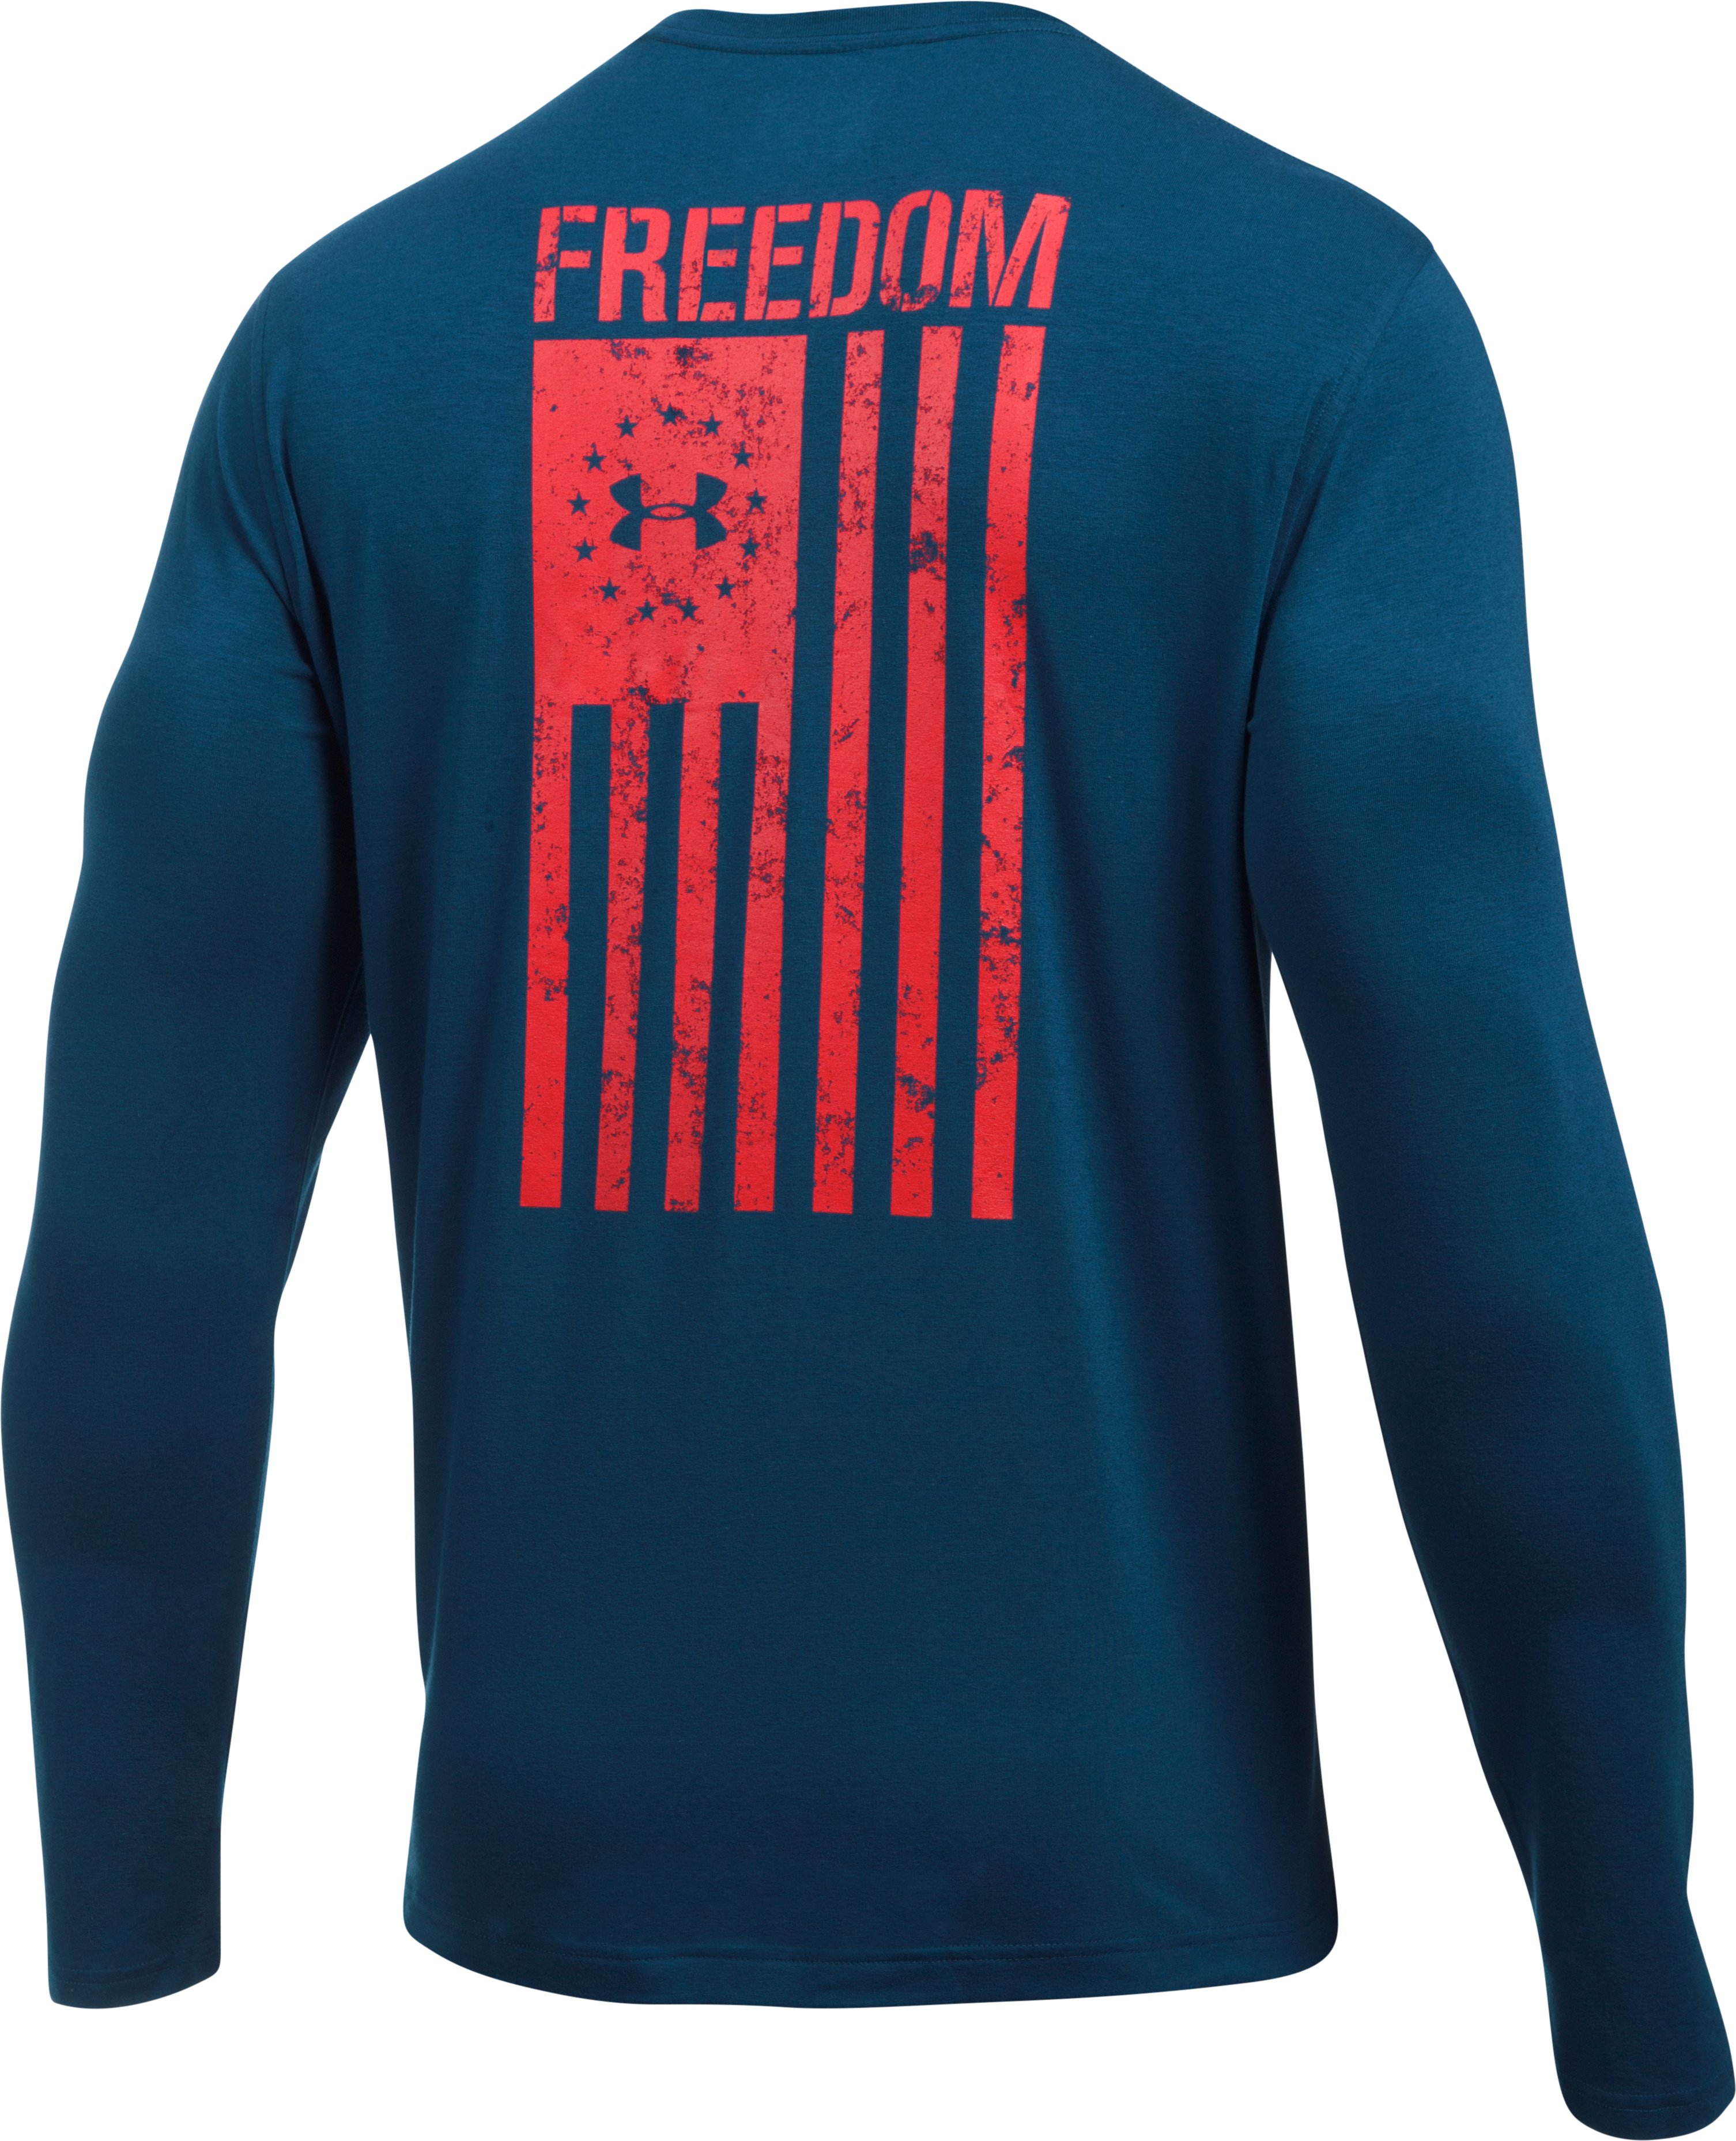 Men's UA Freedom Flag Long Sleeve T-Shirt, BLACKOUT NAVY, undefined